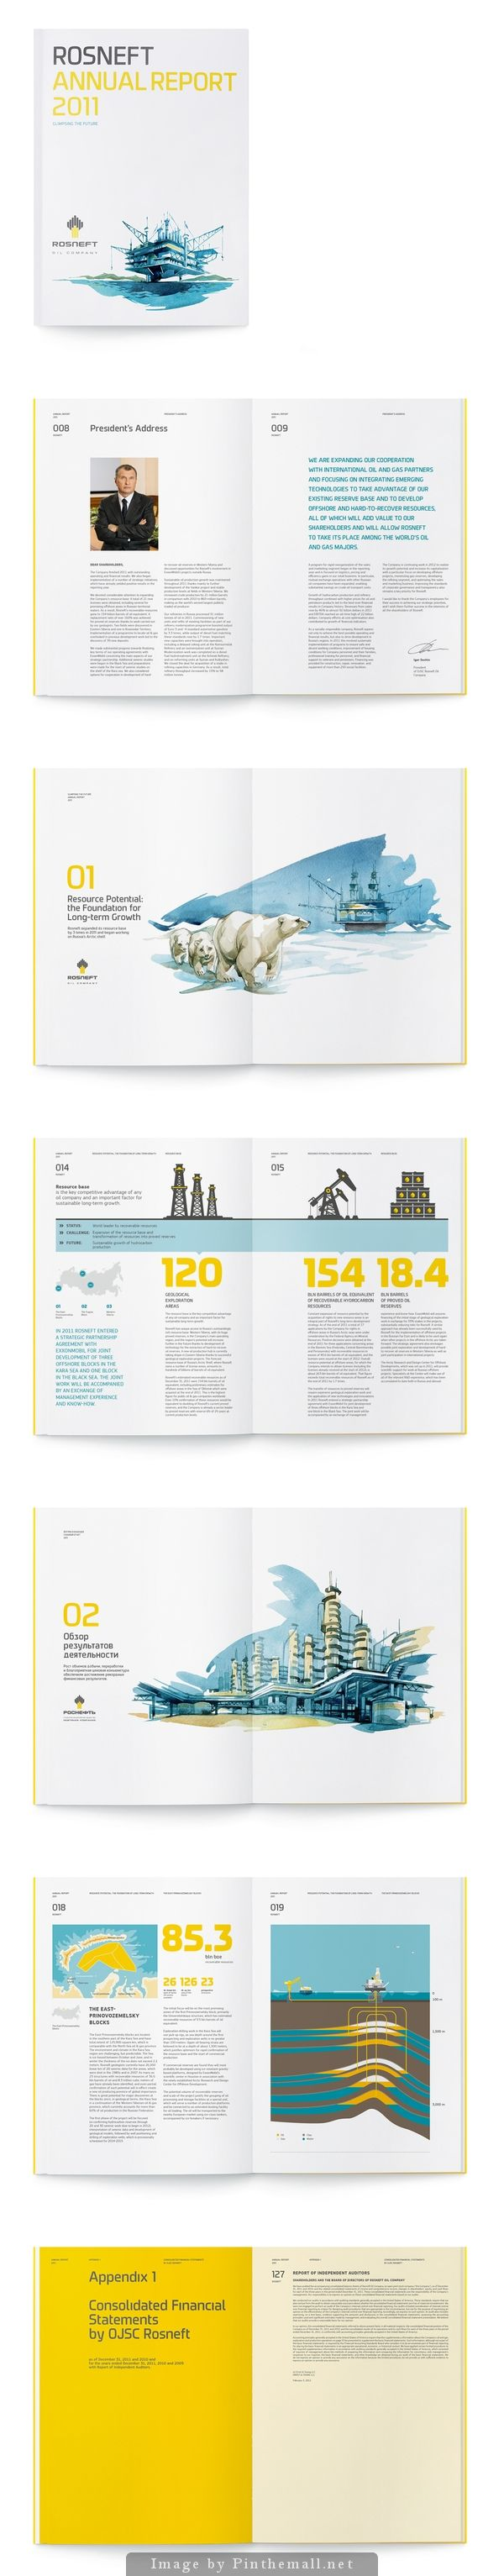 """Rosneft"", Annual Report 2011 by Viktor Miller-Gausa"